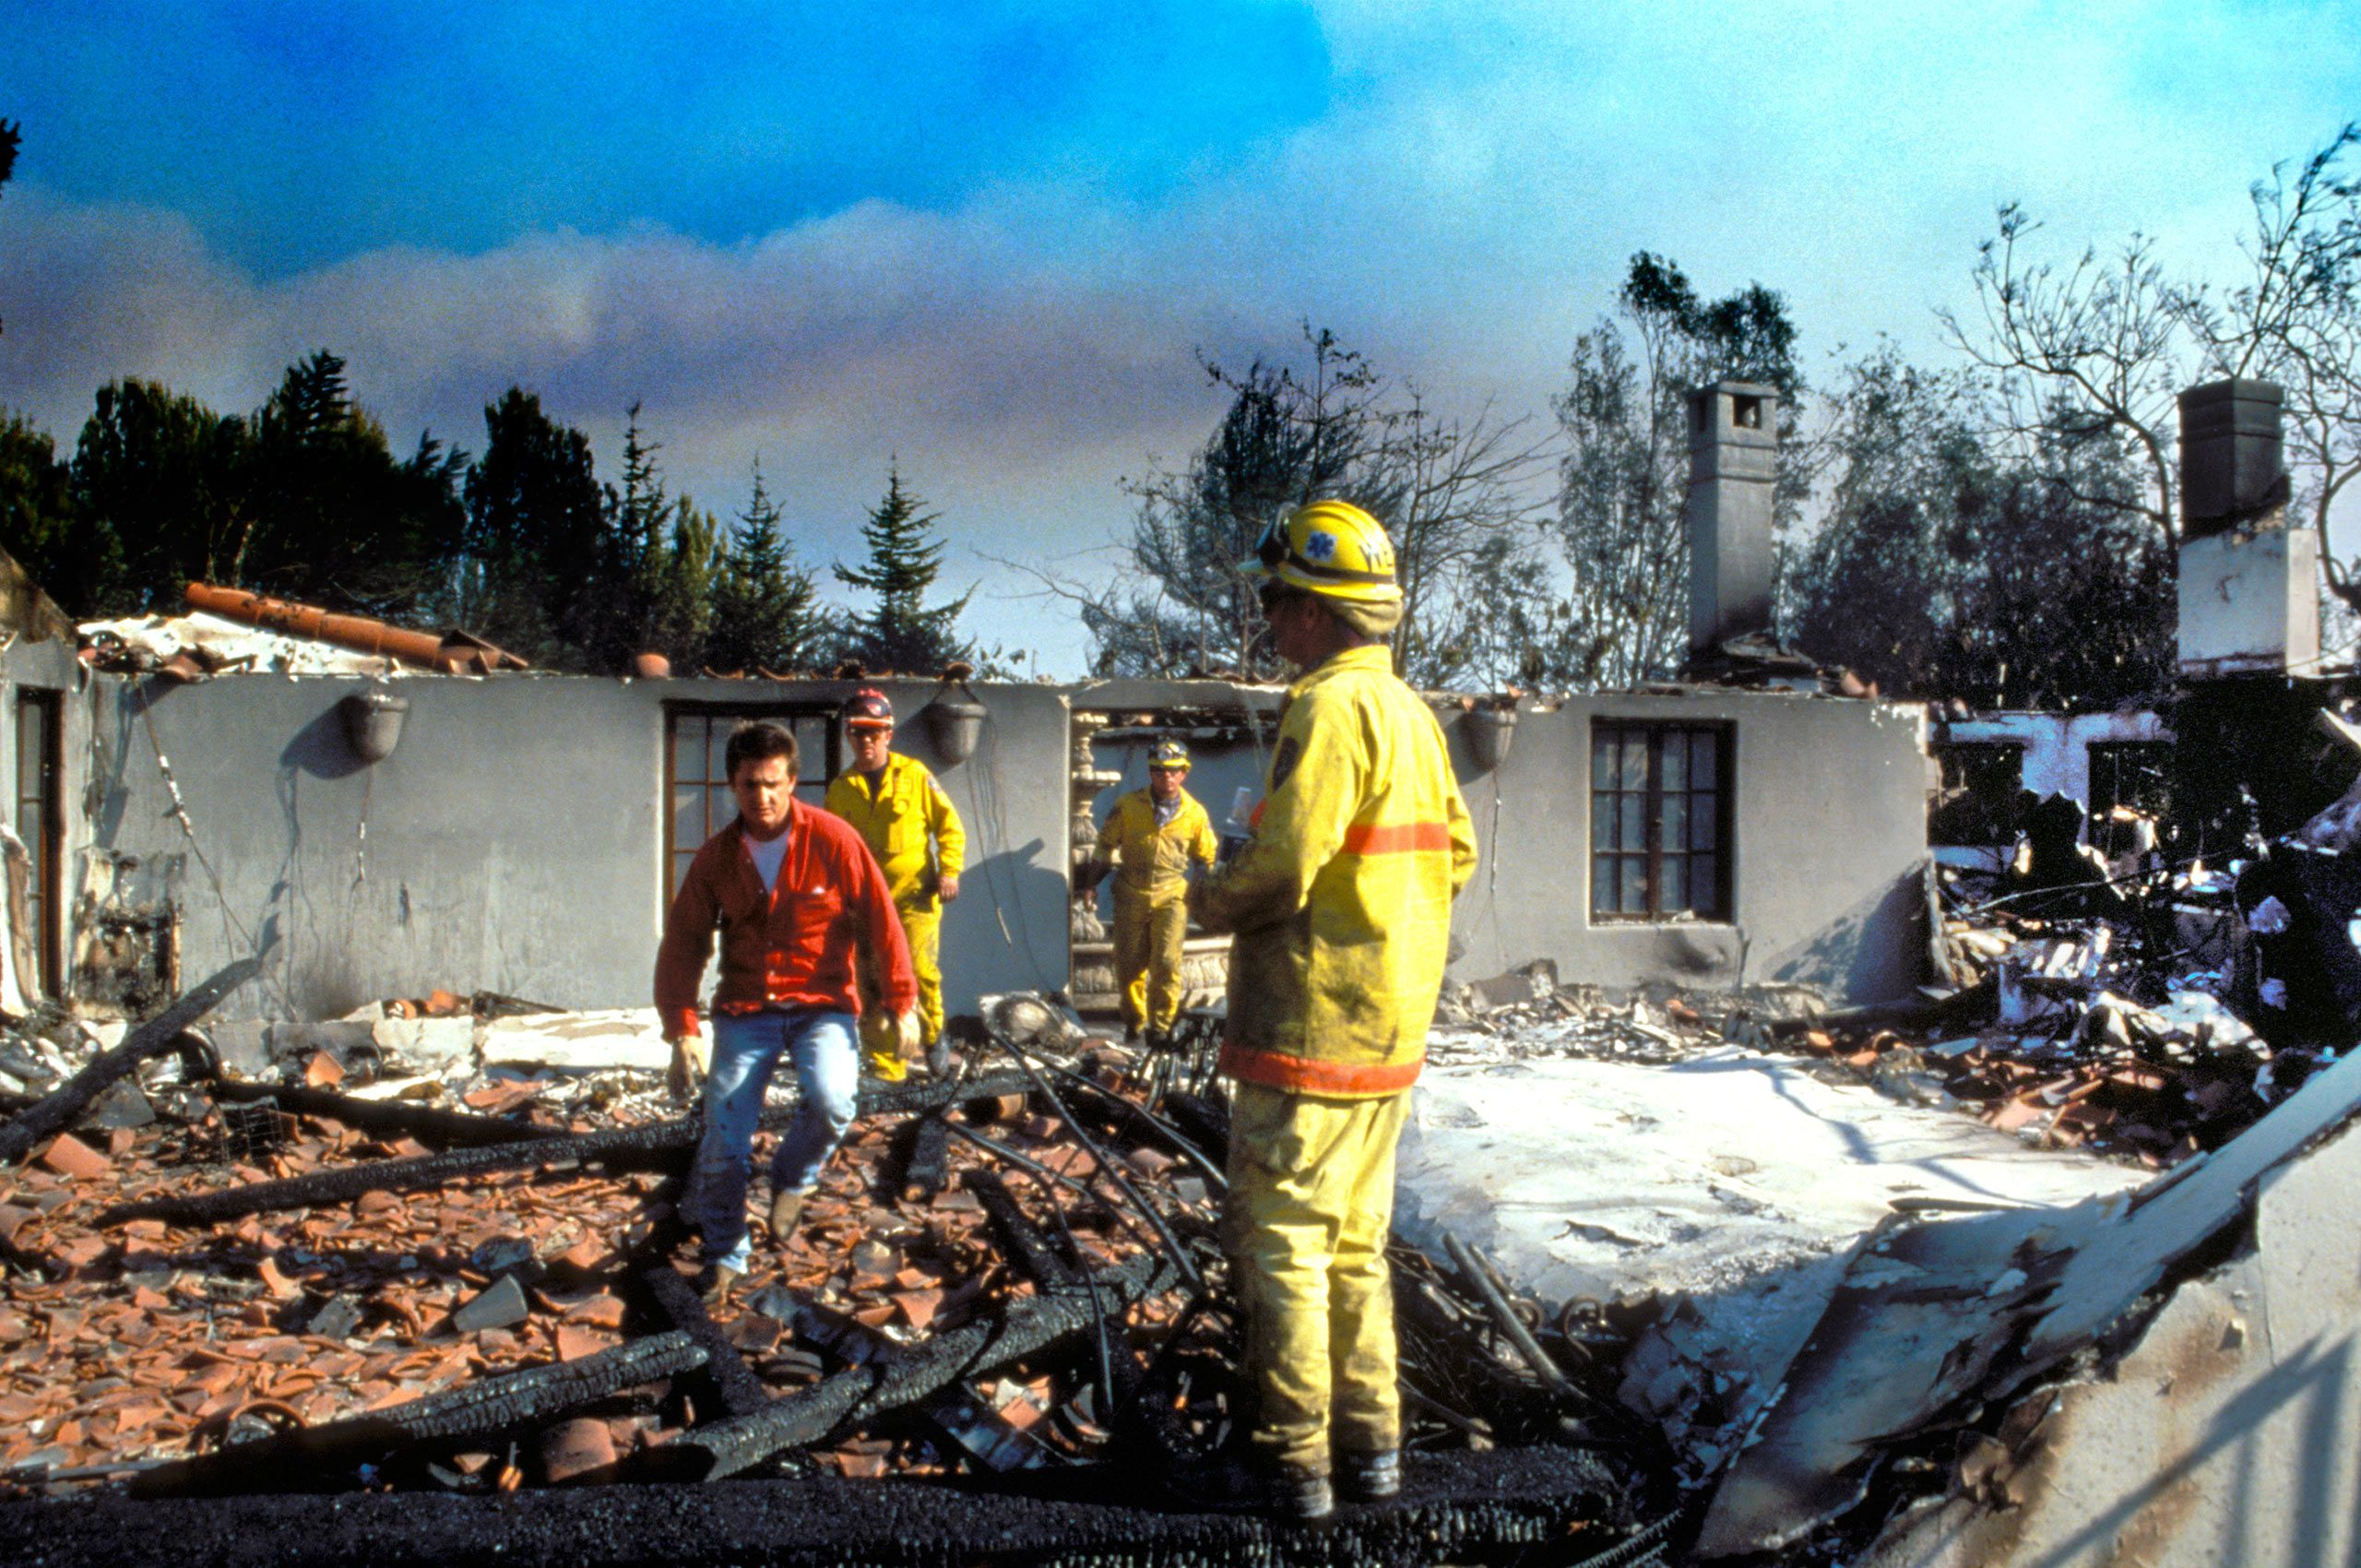 04Sean-Penn-Inspects-his-Fire-Destroyed-Home,-Malibu-Beach,-California,-November-1993_1993.jpg